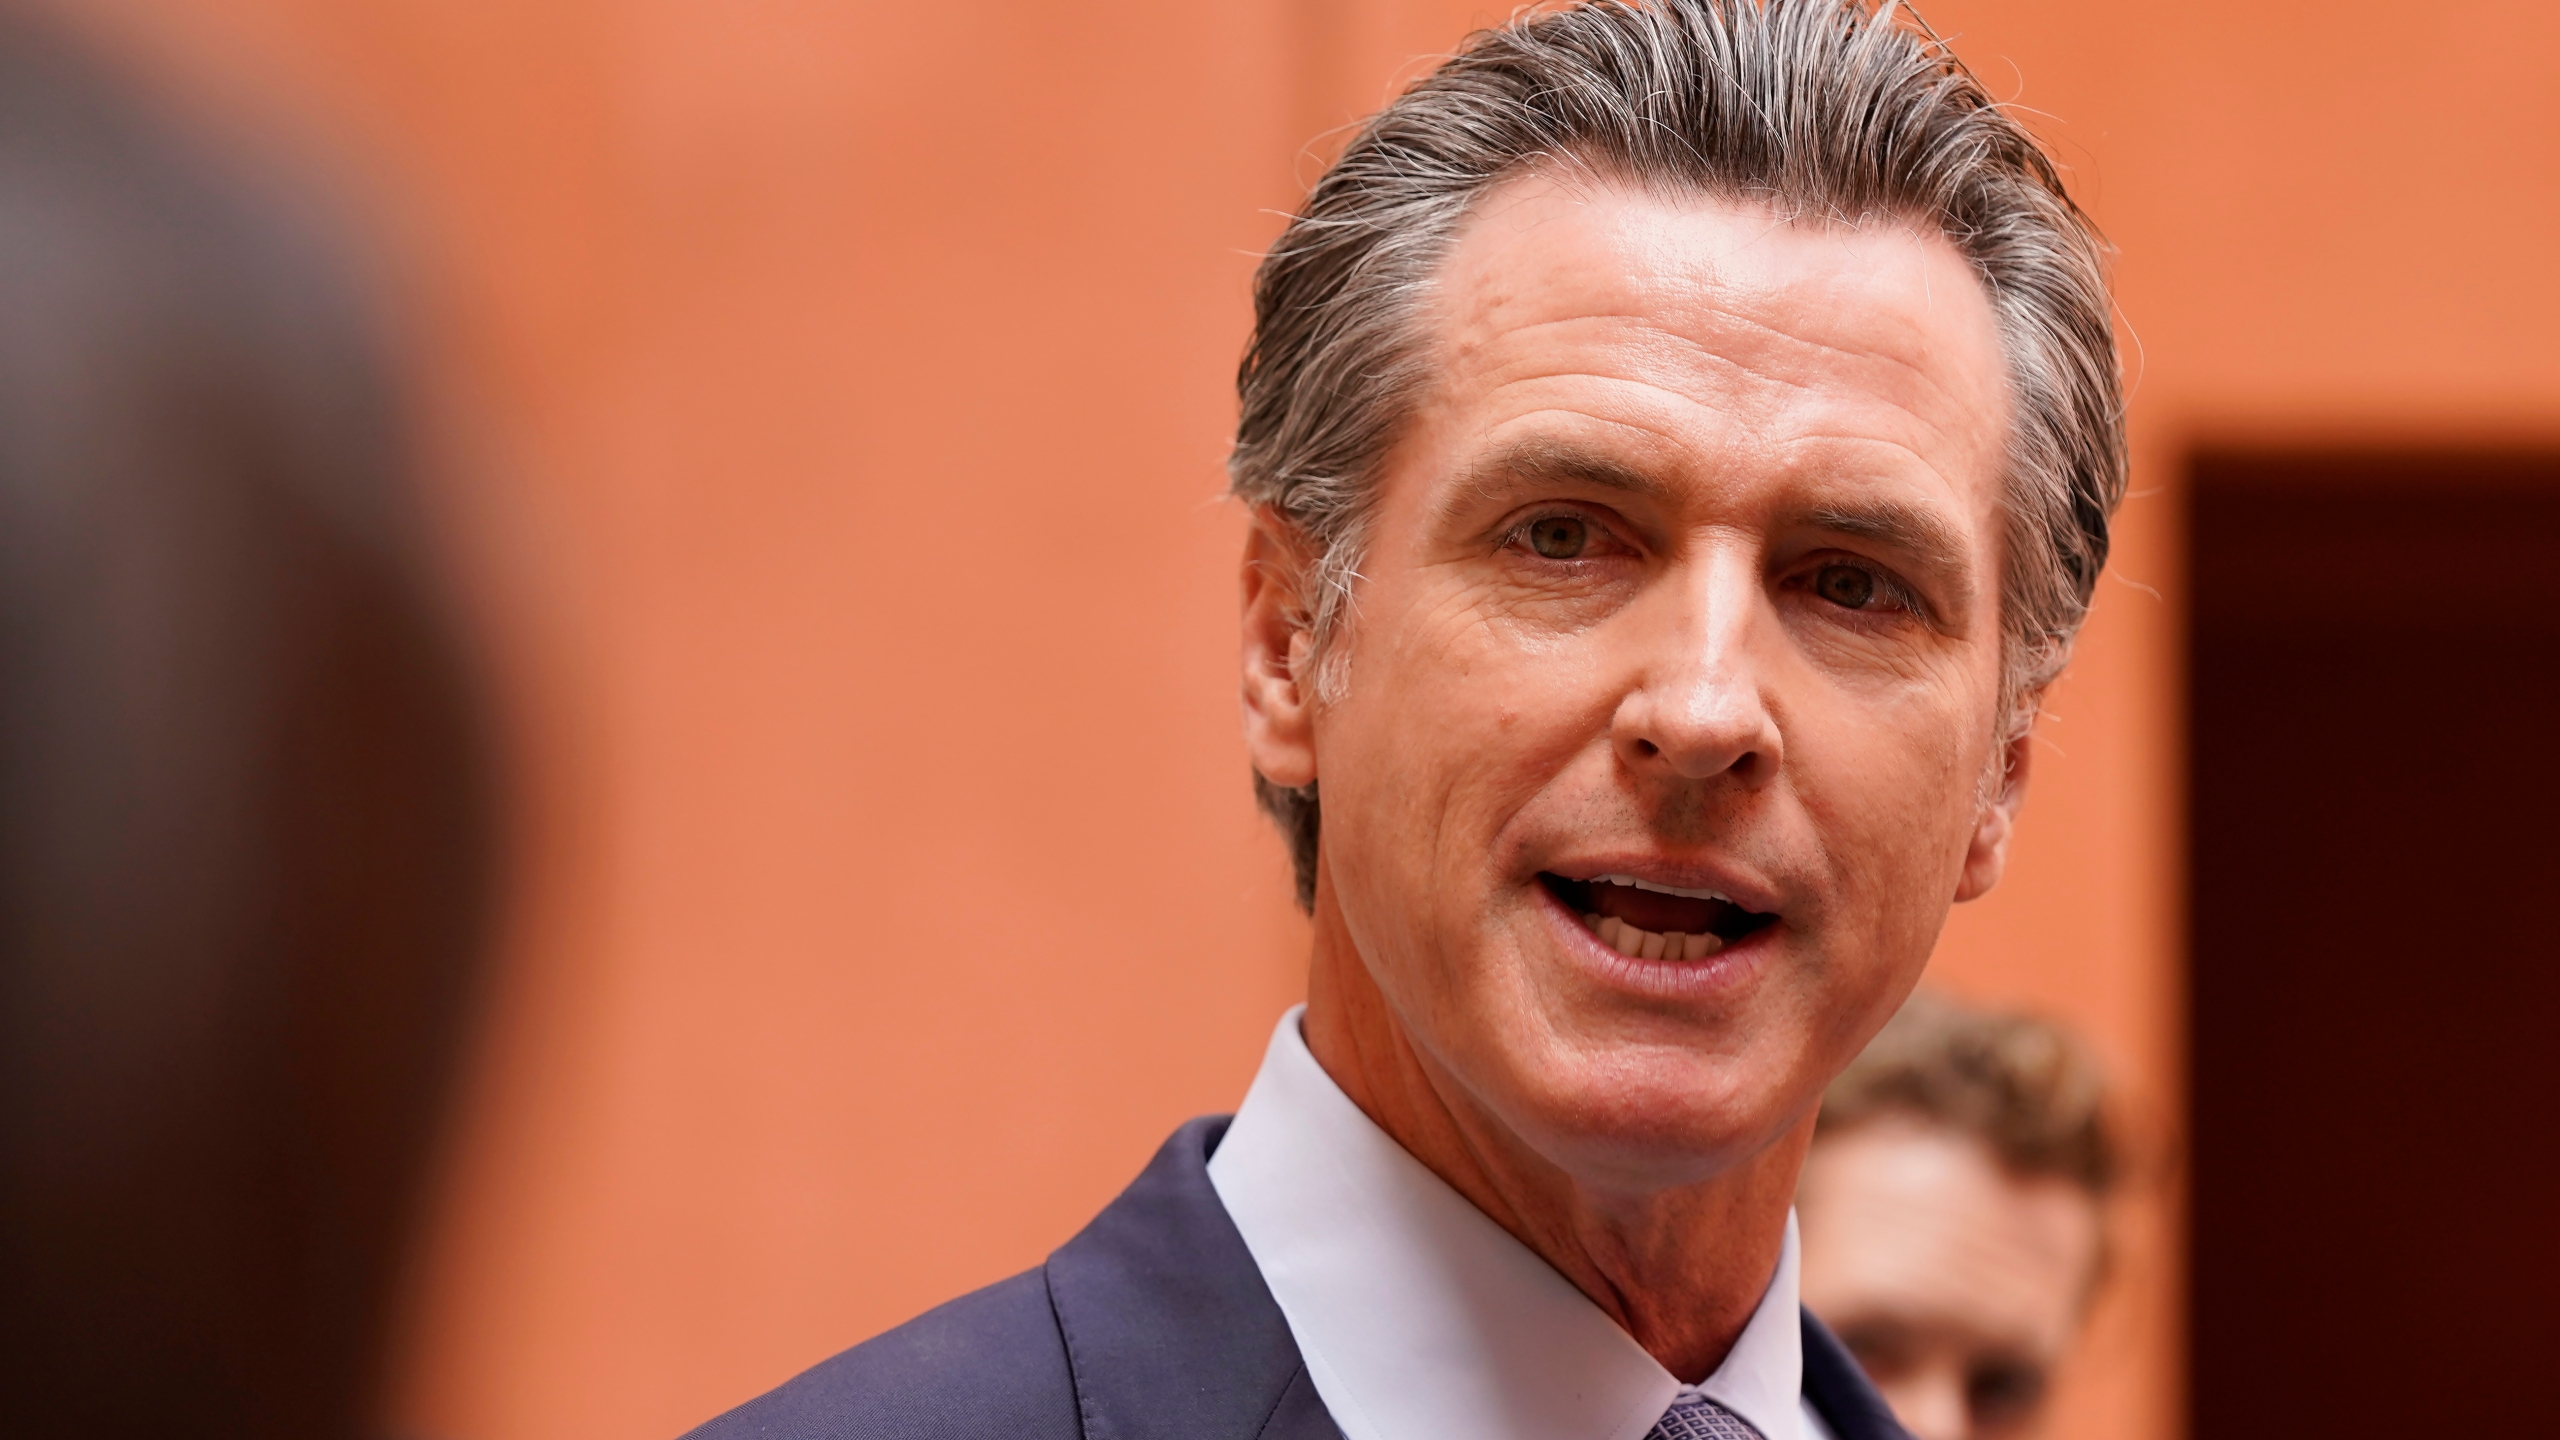 """California Gov. Gavin Newsom responds to a question while meeting with reporters after casting his recall ballot at a voting center in Sacramento, Calif., Friday, Sept. 10, 2021. The last day to vote in the recall election is Tuesday Sept. 14. A majority of voters must mark """"no"""" on the recall to keep Newsom in office. (AP Photo/Rich Pedroncelli)"""